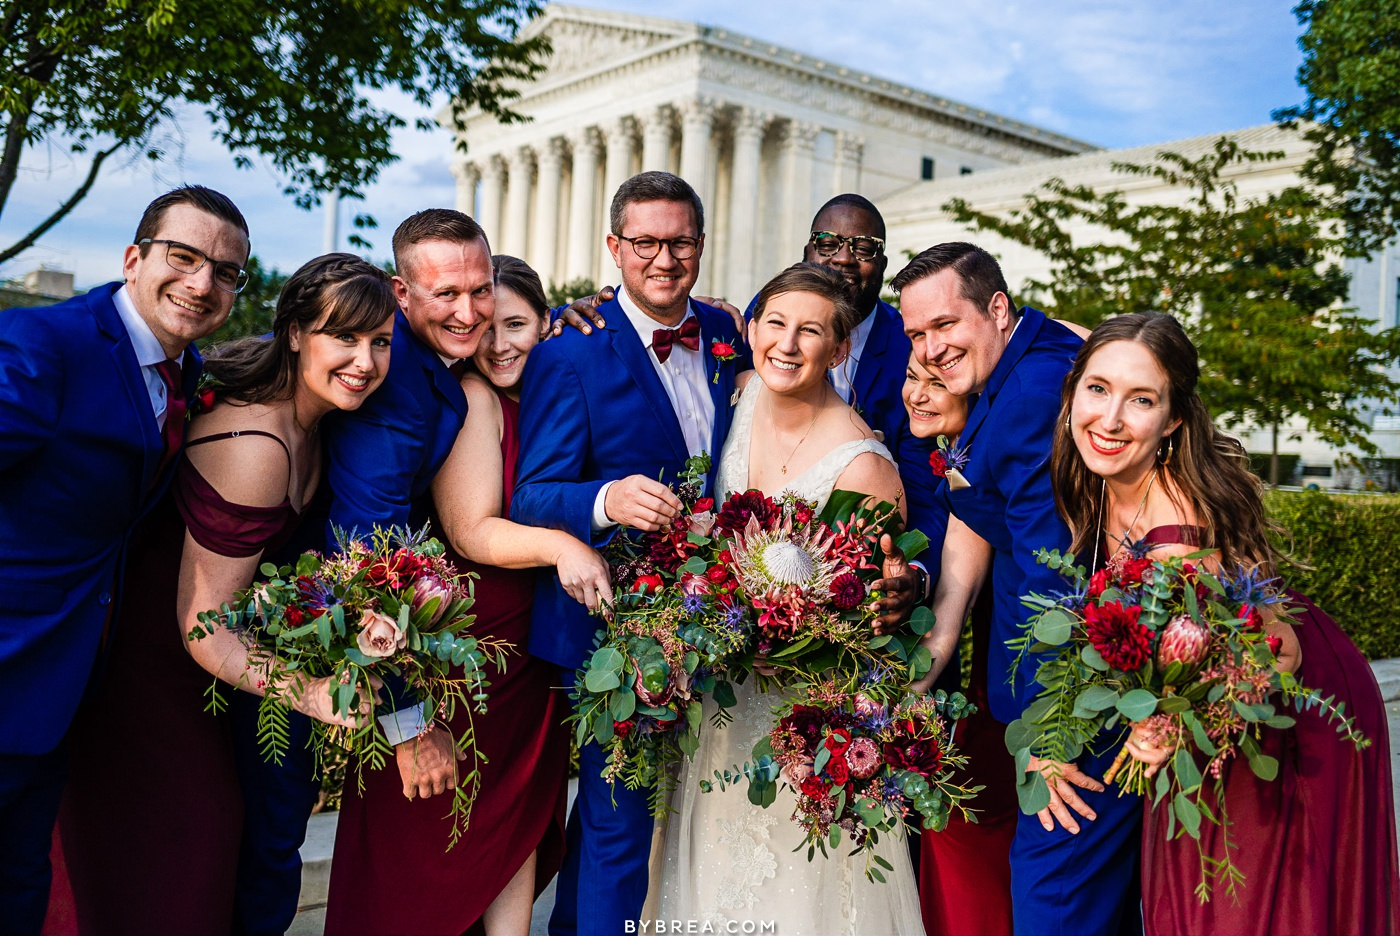 Wedding party photo outside of Supreme Court